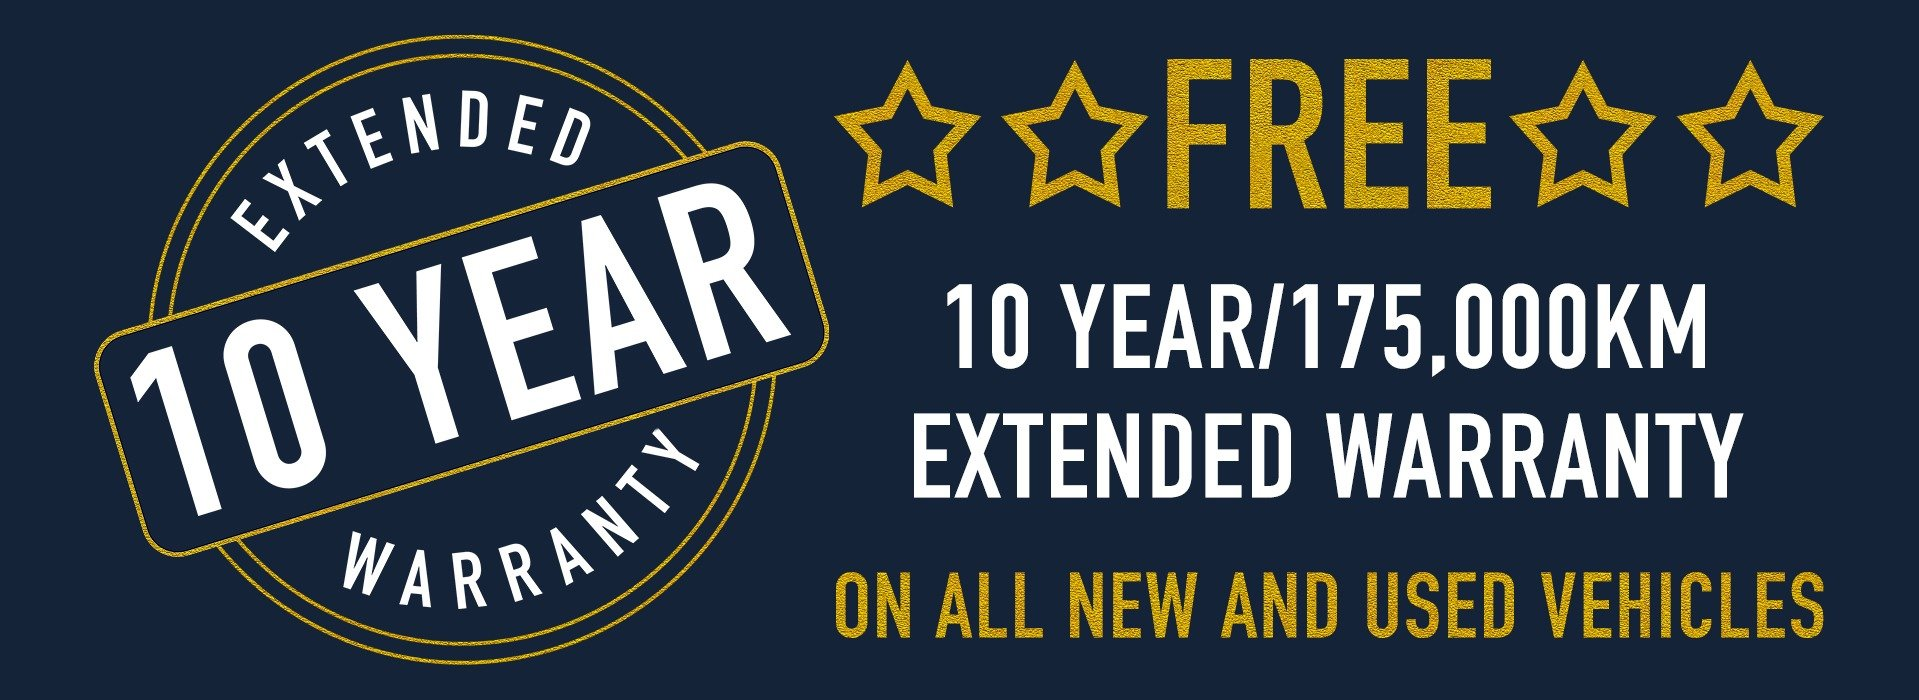 Free 10 year extended warranty